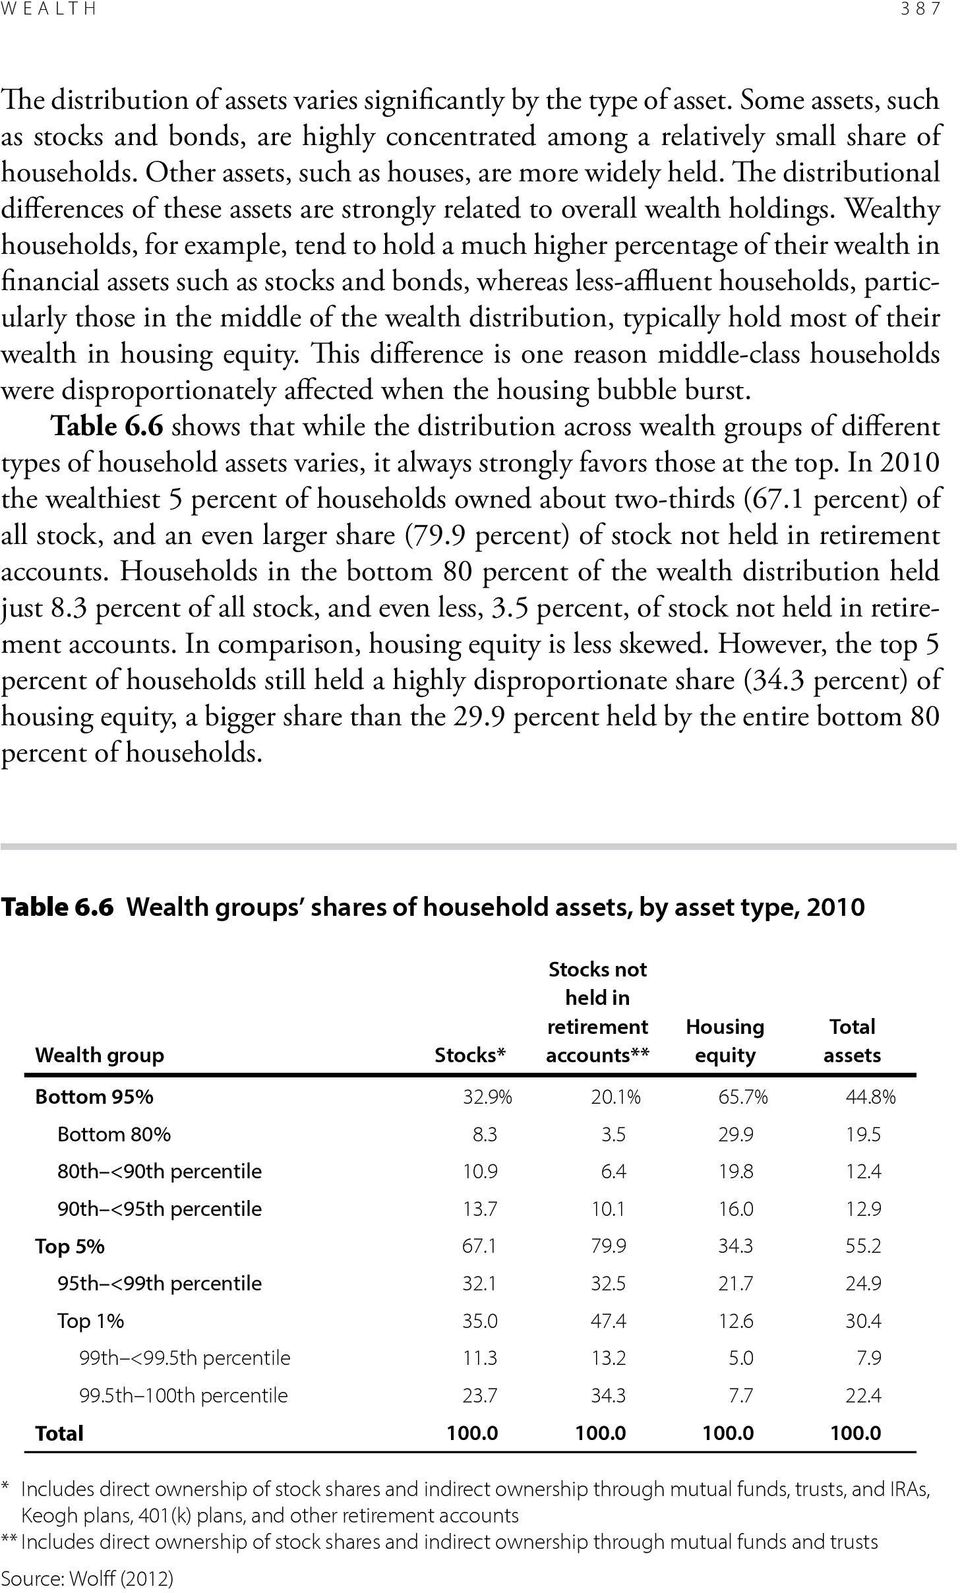 Wealthy households, for example, tend to hold a much higher percentage of their wealth in financial assets such as stocks and bonds, whereas less-affluent households, particularly those in the middle